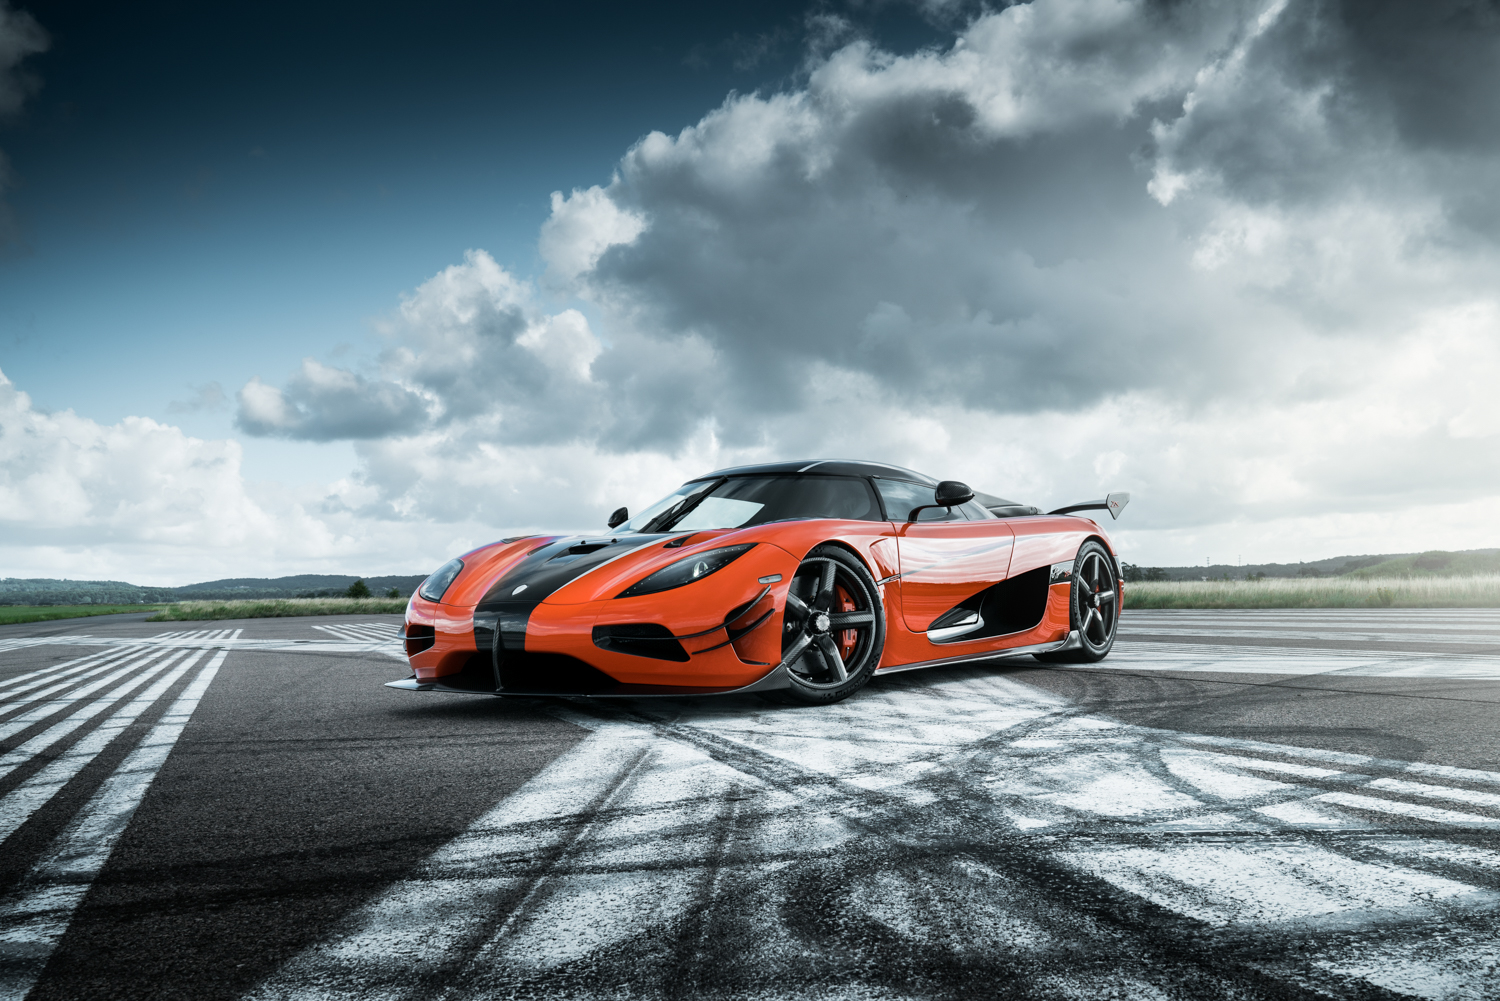 Koenigsegg Agera Xs Is An Rs That Is Coming To The Usa In Road Legal